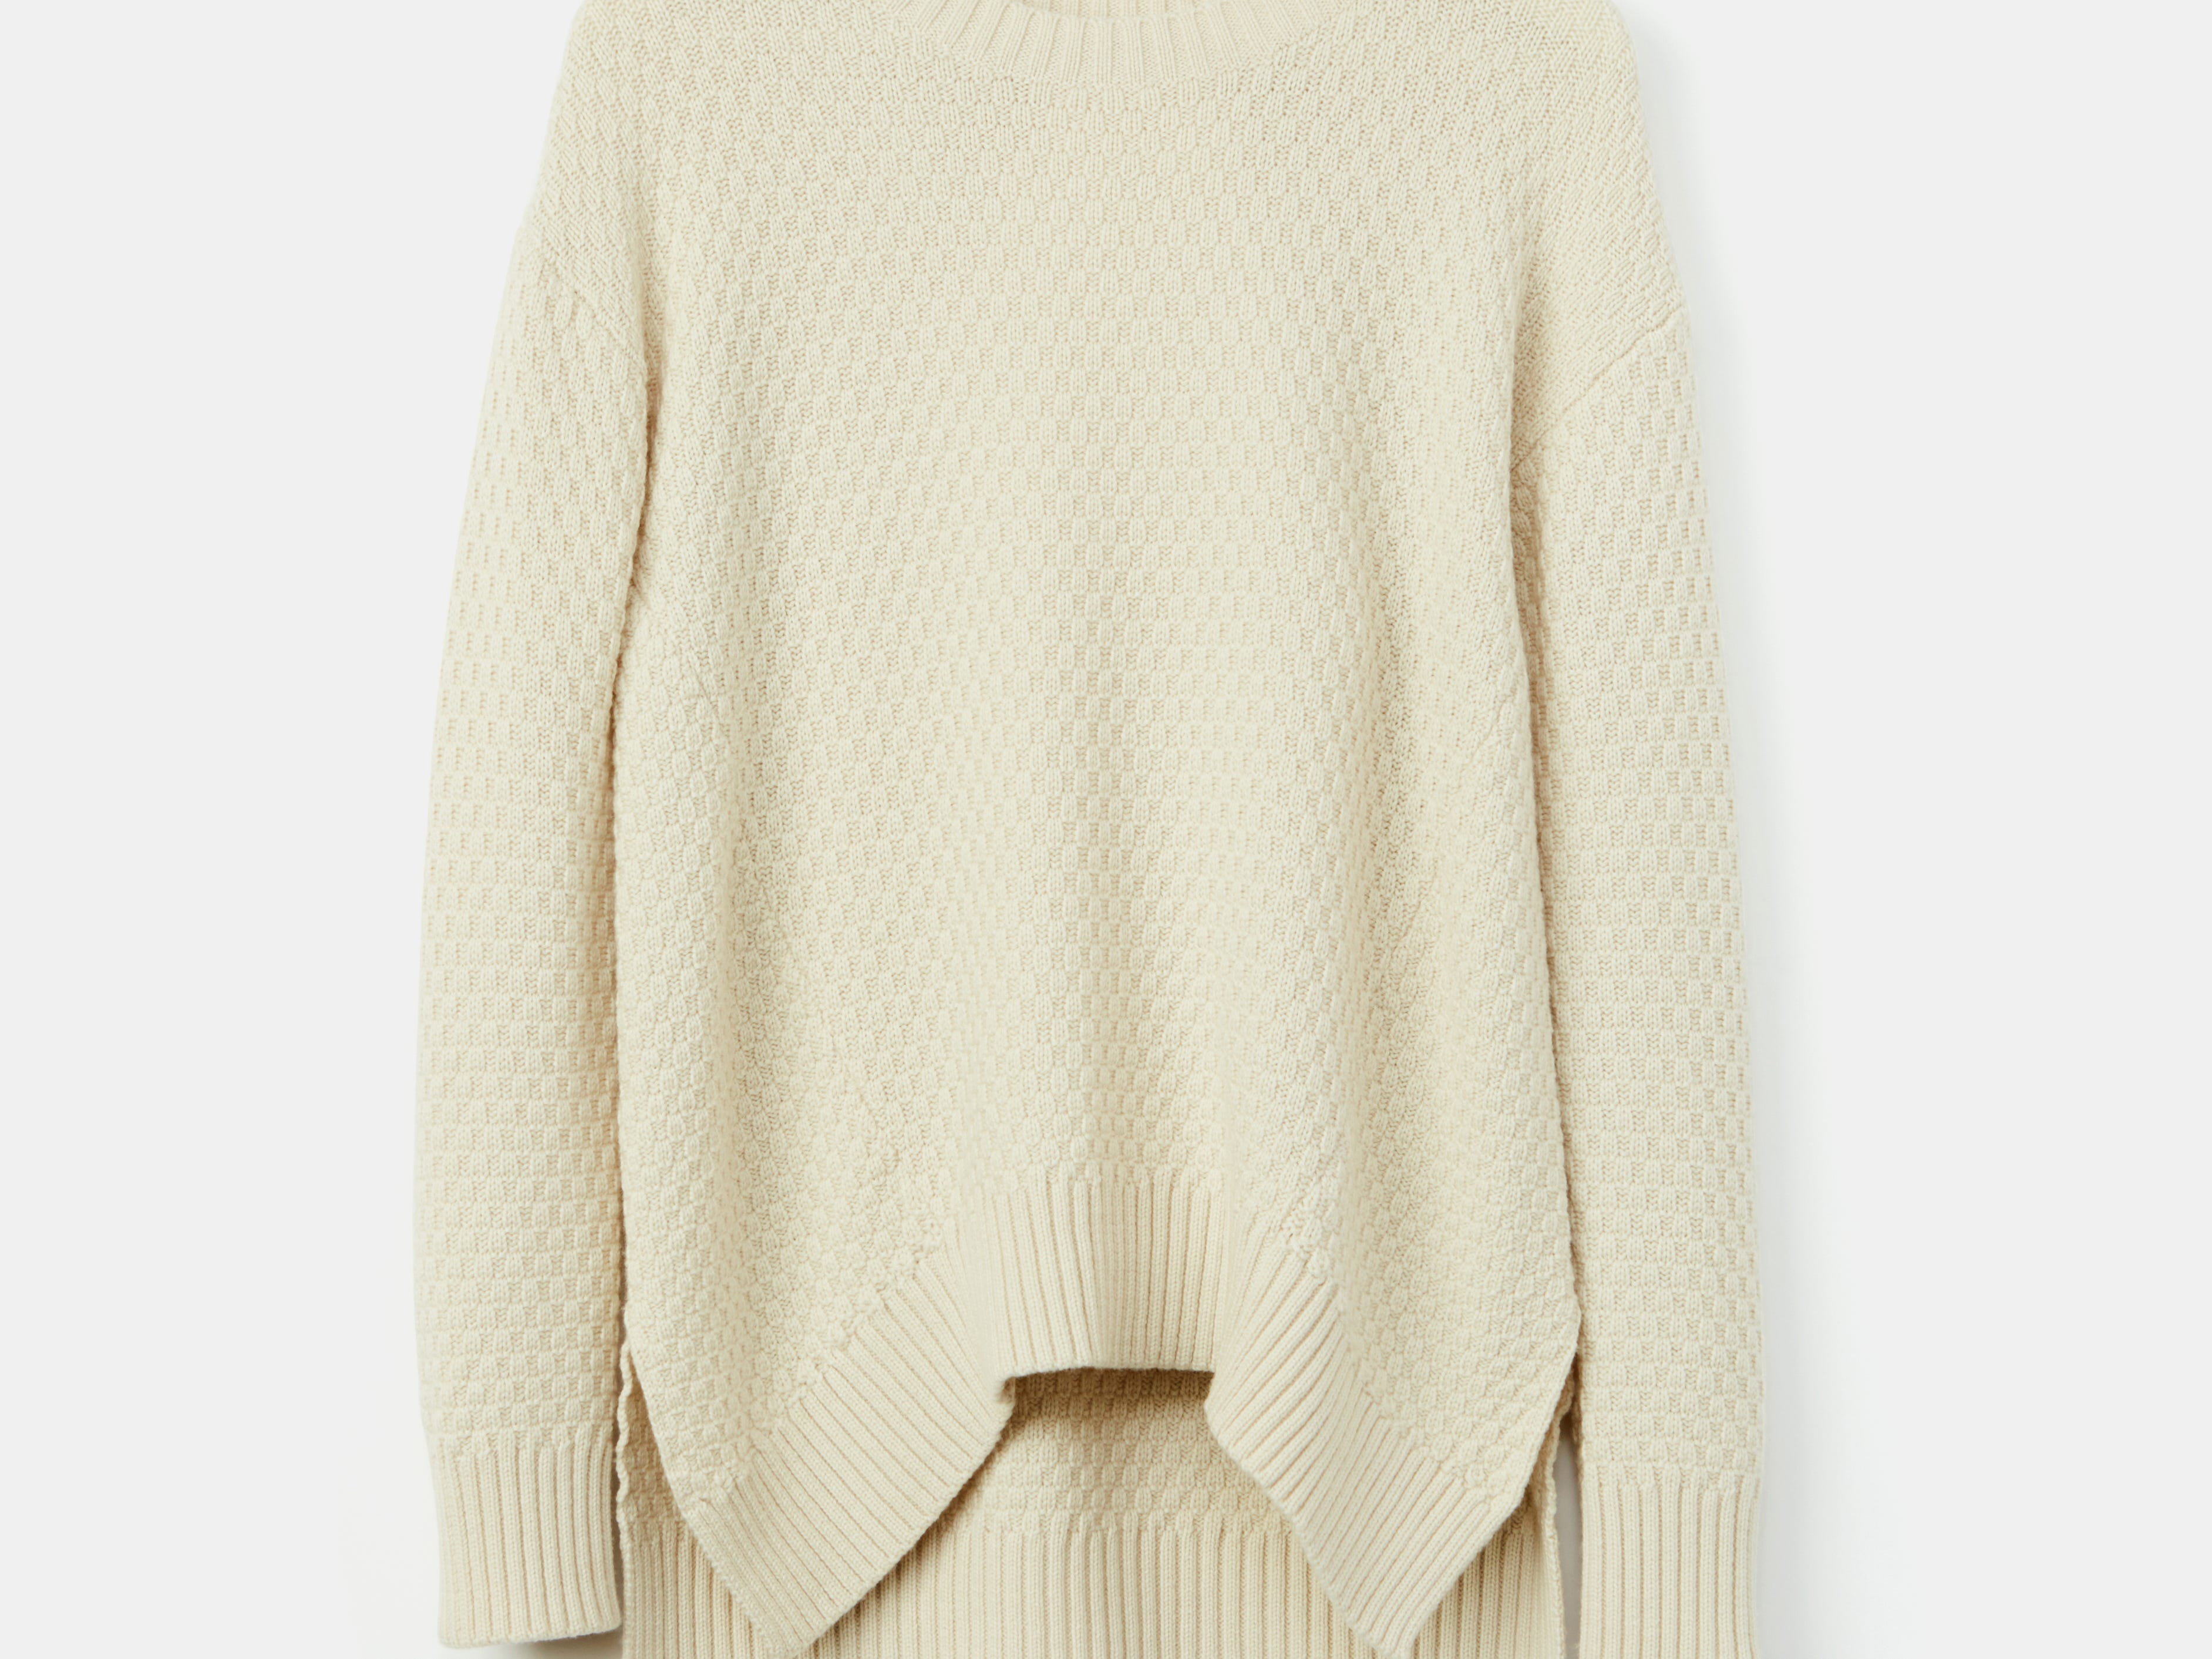 Amour Vert's Abba Crewneck Sweater is made of merino wool sourced from a partner mill in Italy. Price: $188.